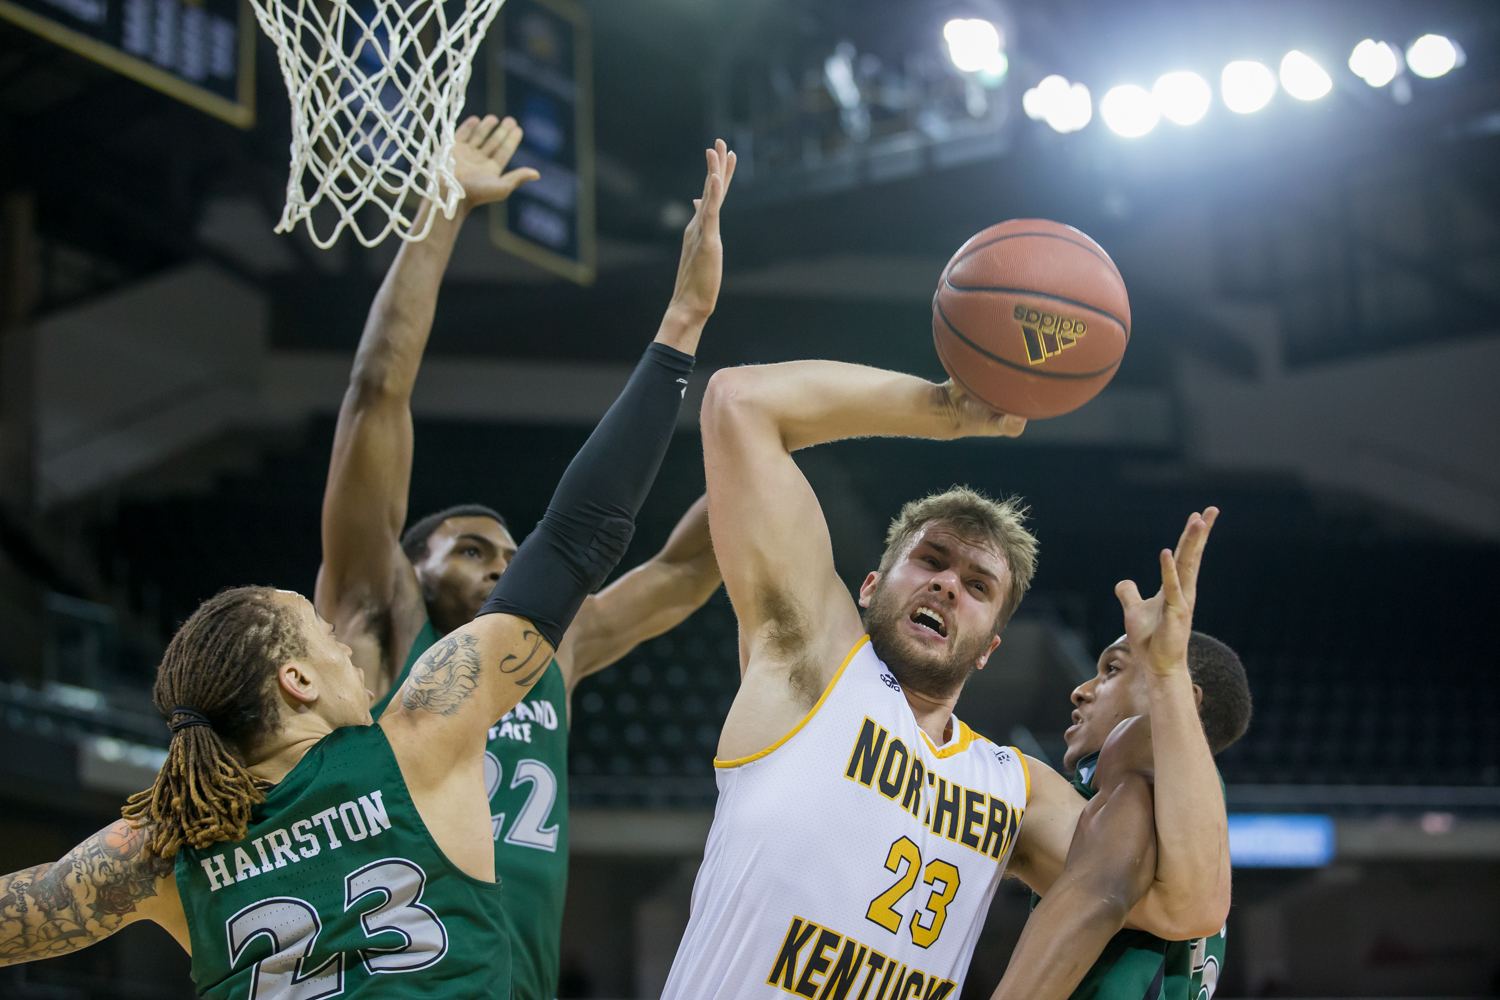 Carson Williams (23) fights to shoot under pressure in the game against Cleveland State.